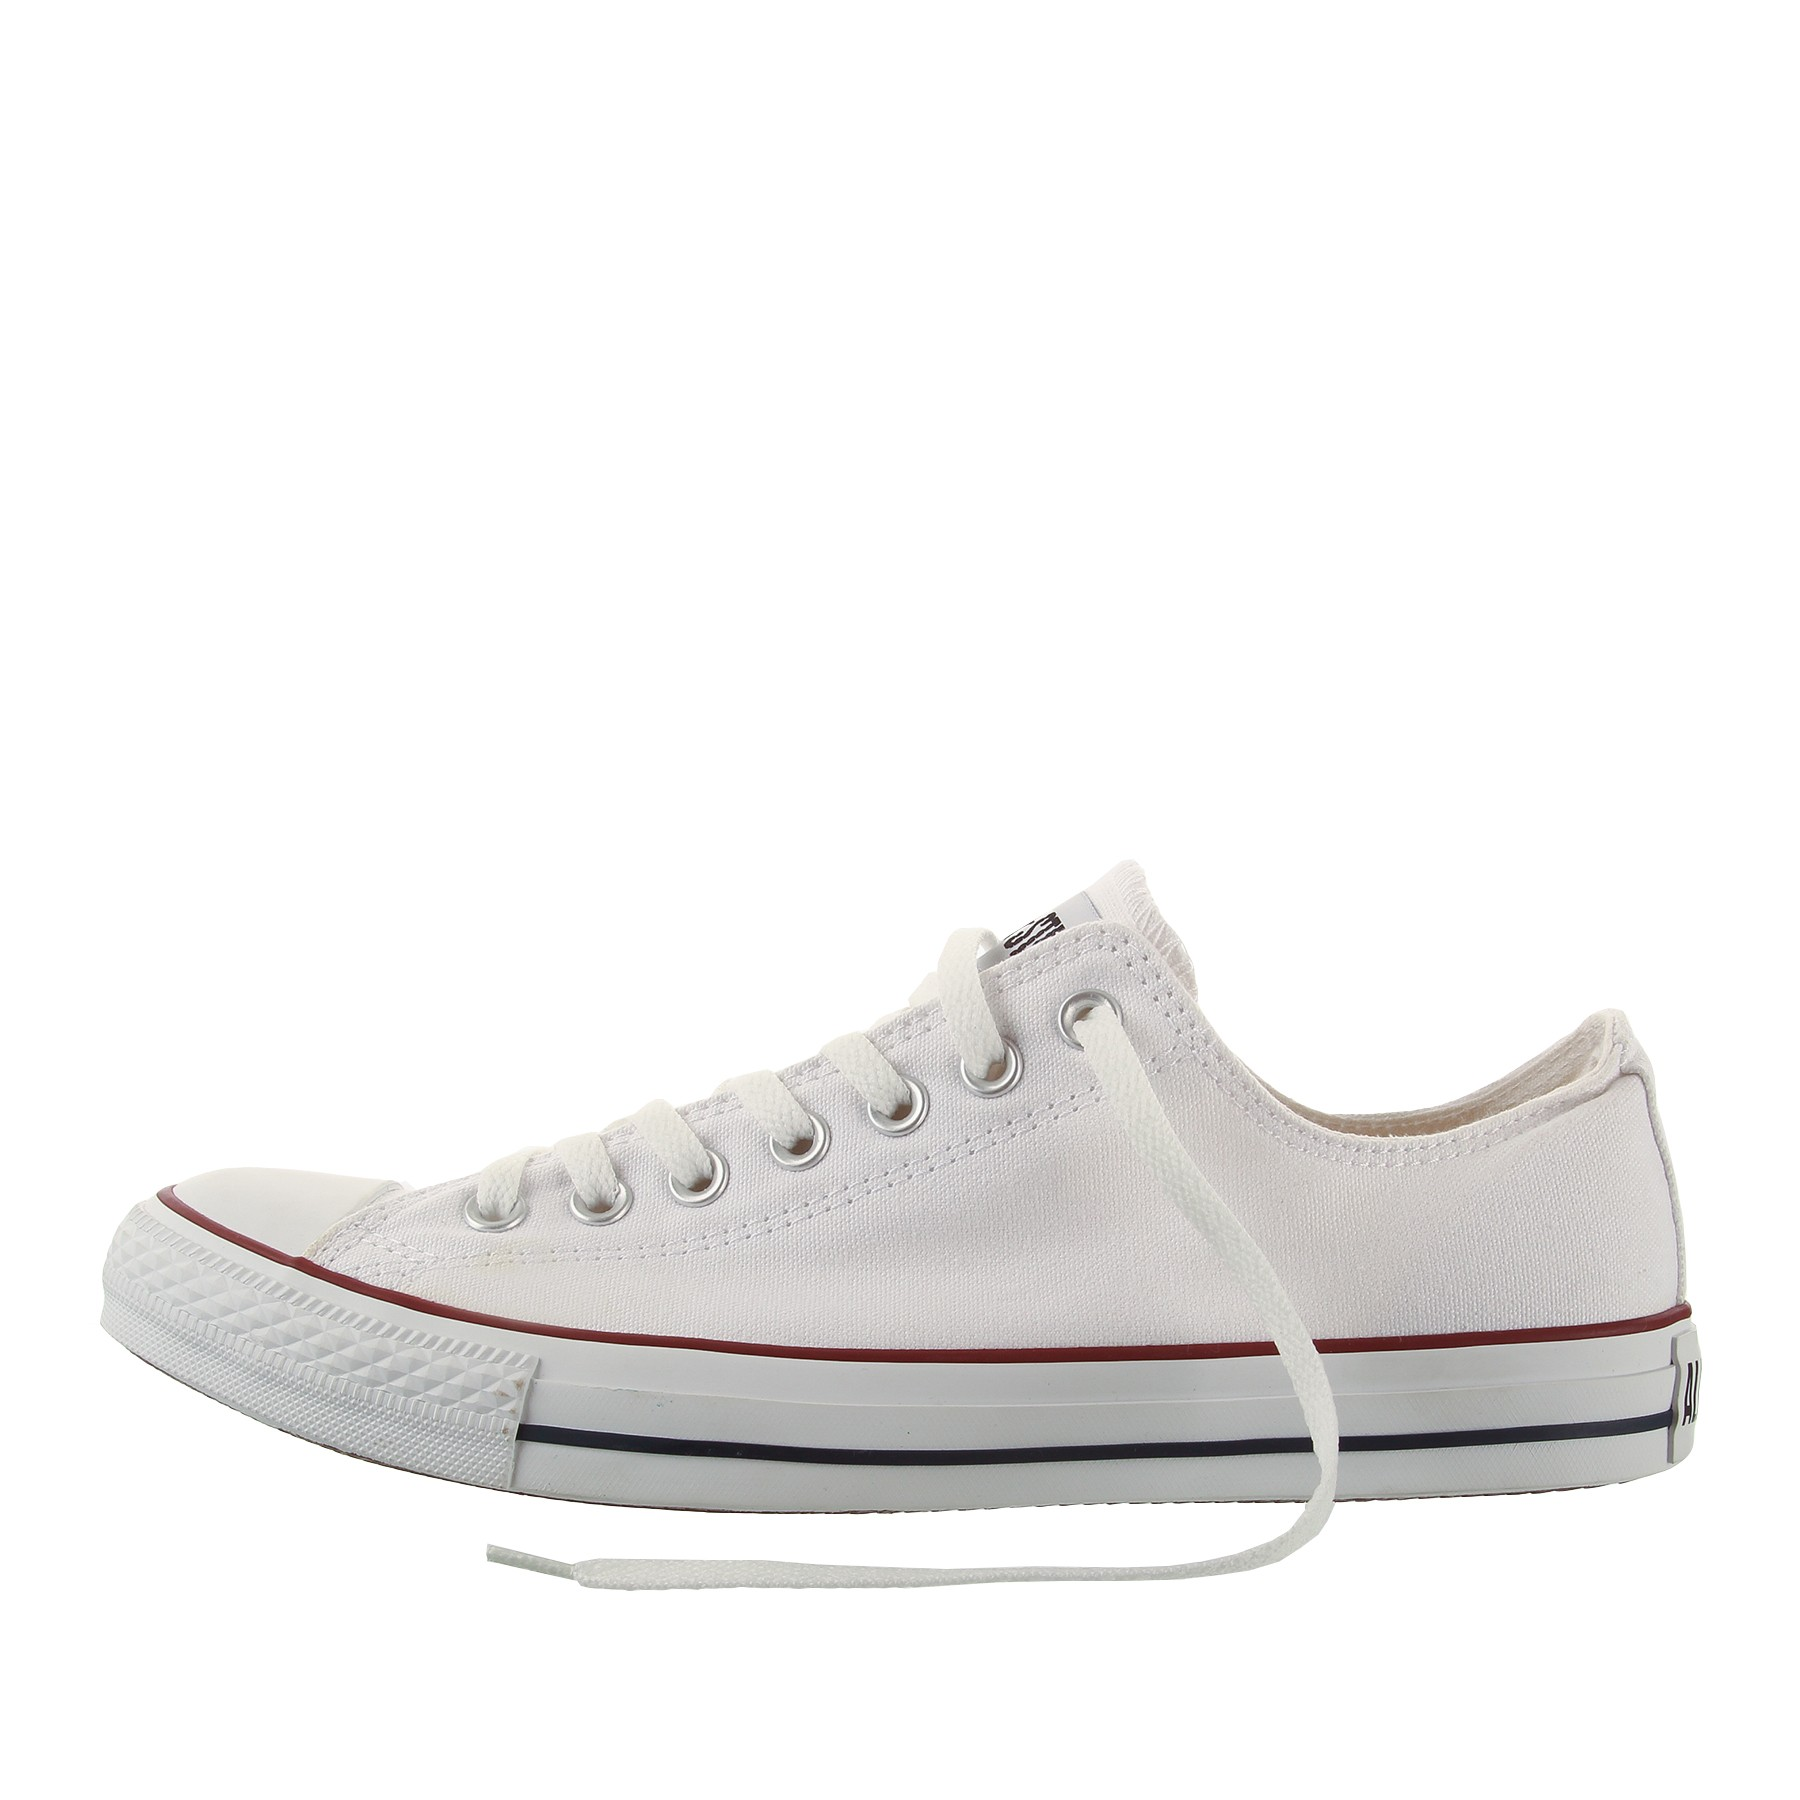 M7652 CT CHUCK TAYLOR AS CORE/OPTICAL WHITE Bild https://cdn03.plentymarkets.com/zsy4vjx32p87/item/images/4271/full/M7652-ama-02.JPG